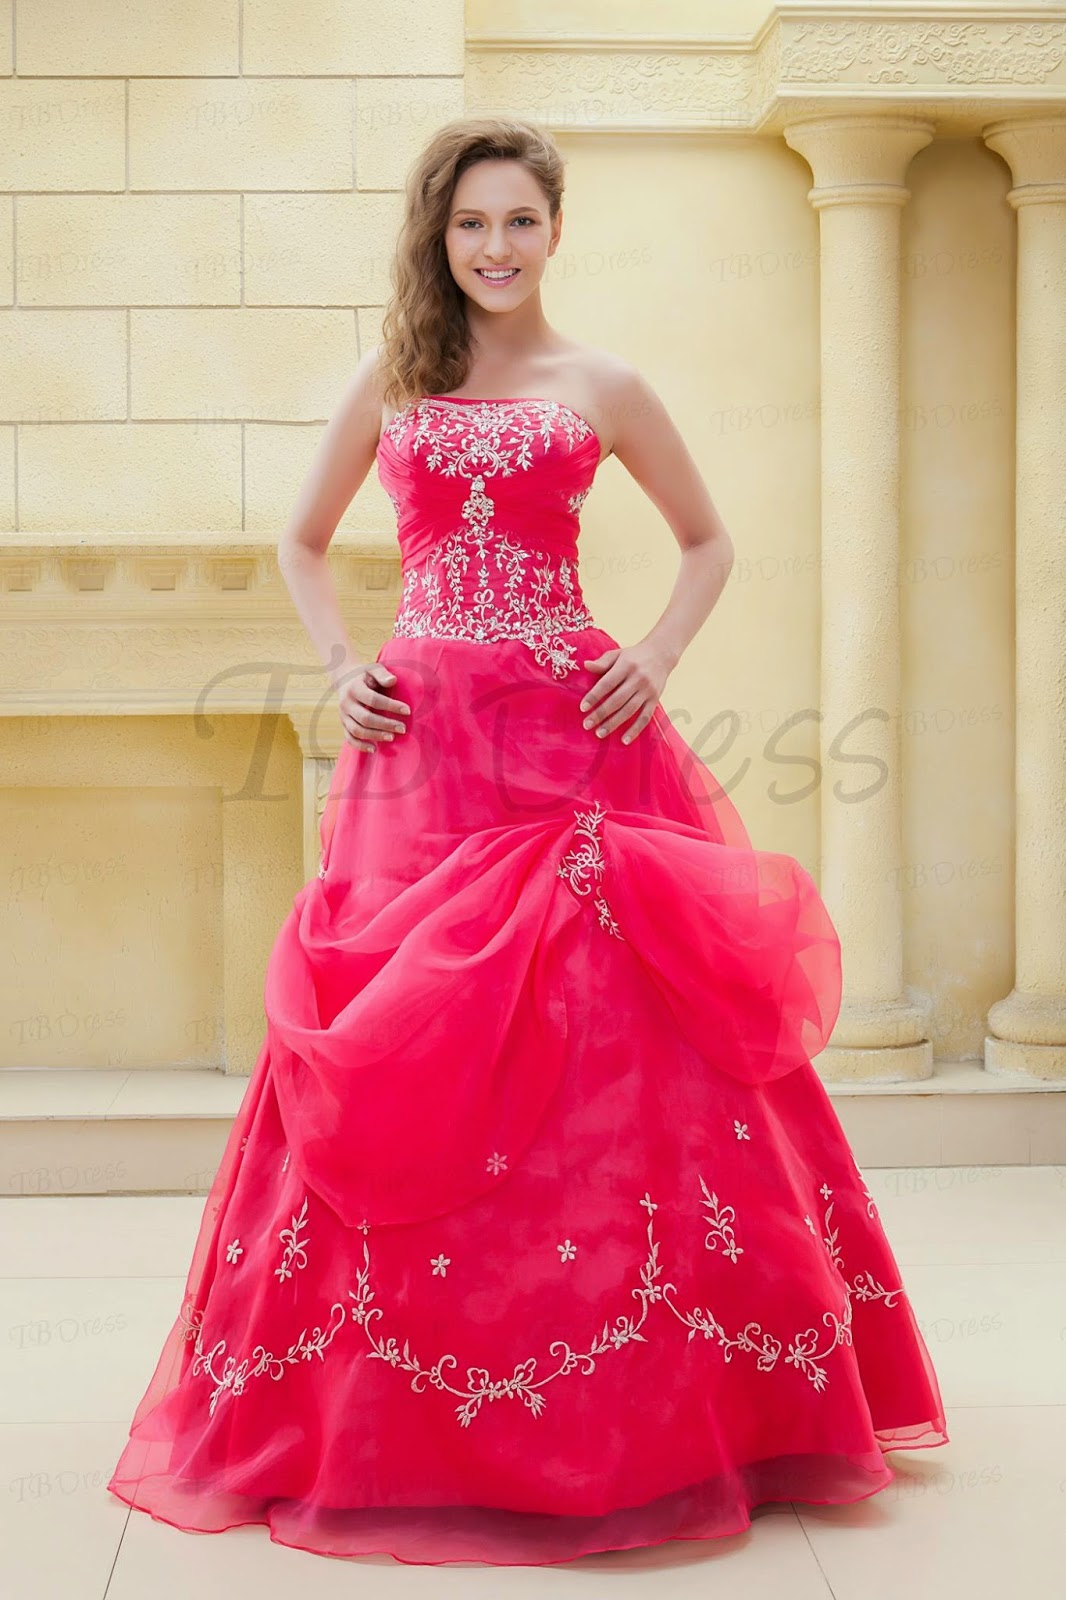 http://www.tbdress.com/product/Beautiful-A-Line-Ball-Gown-Strapless-Elas-Prom-Ball-Gown-Dress-8883106.html